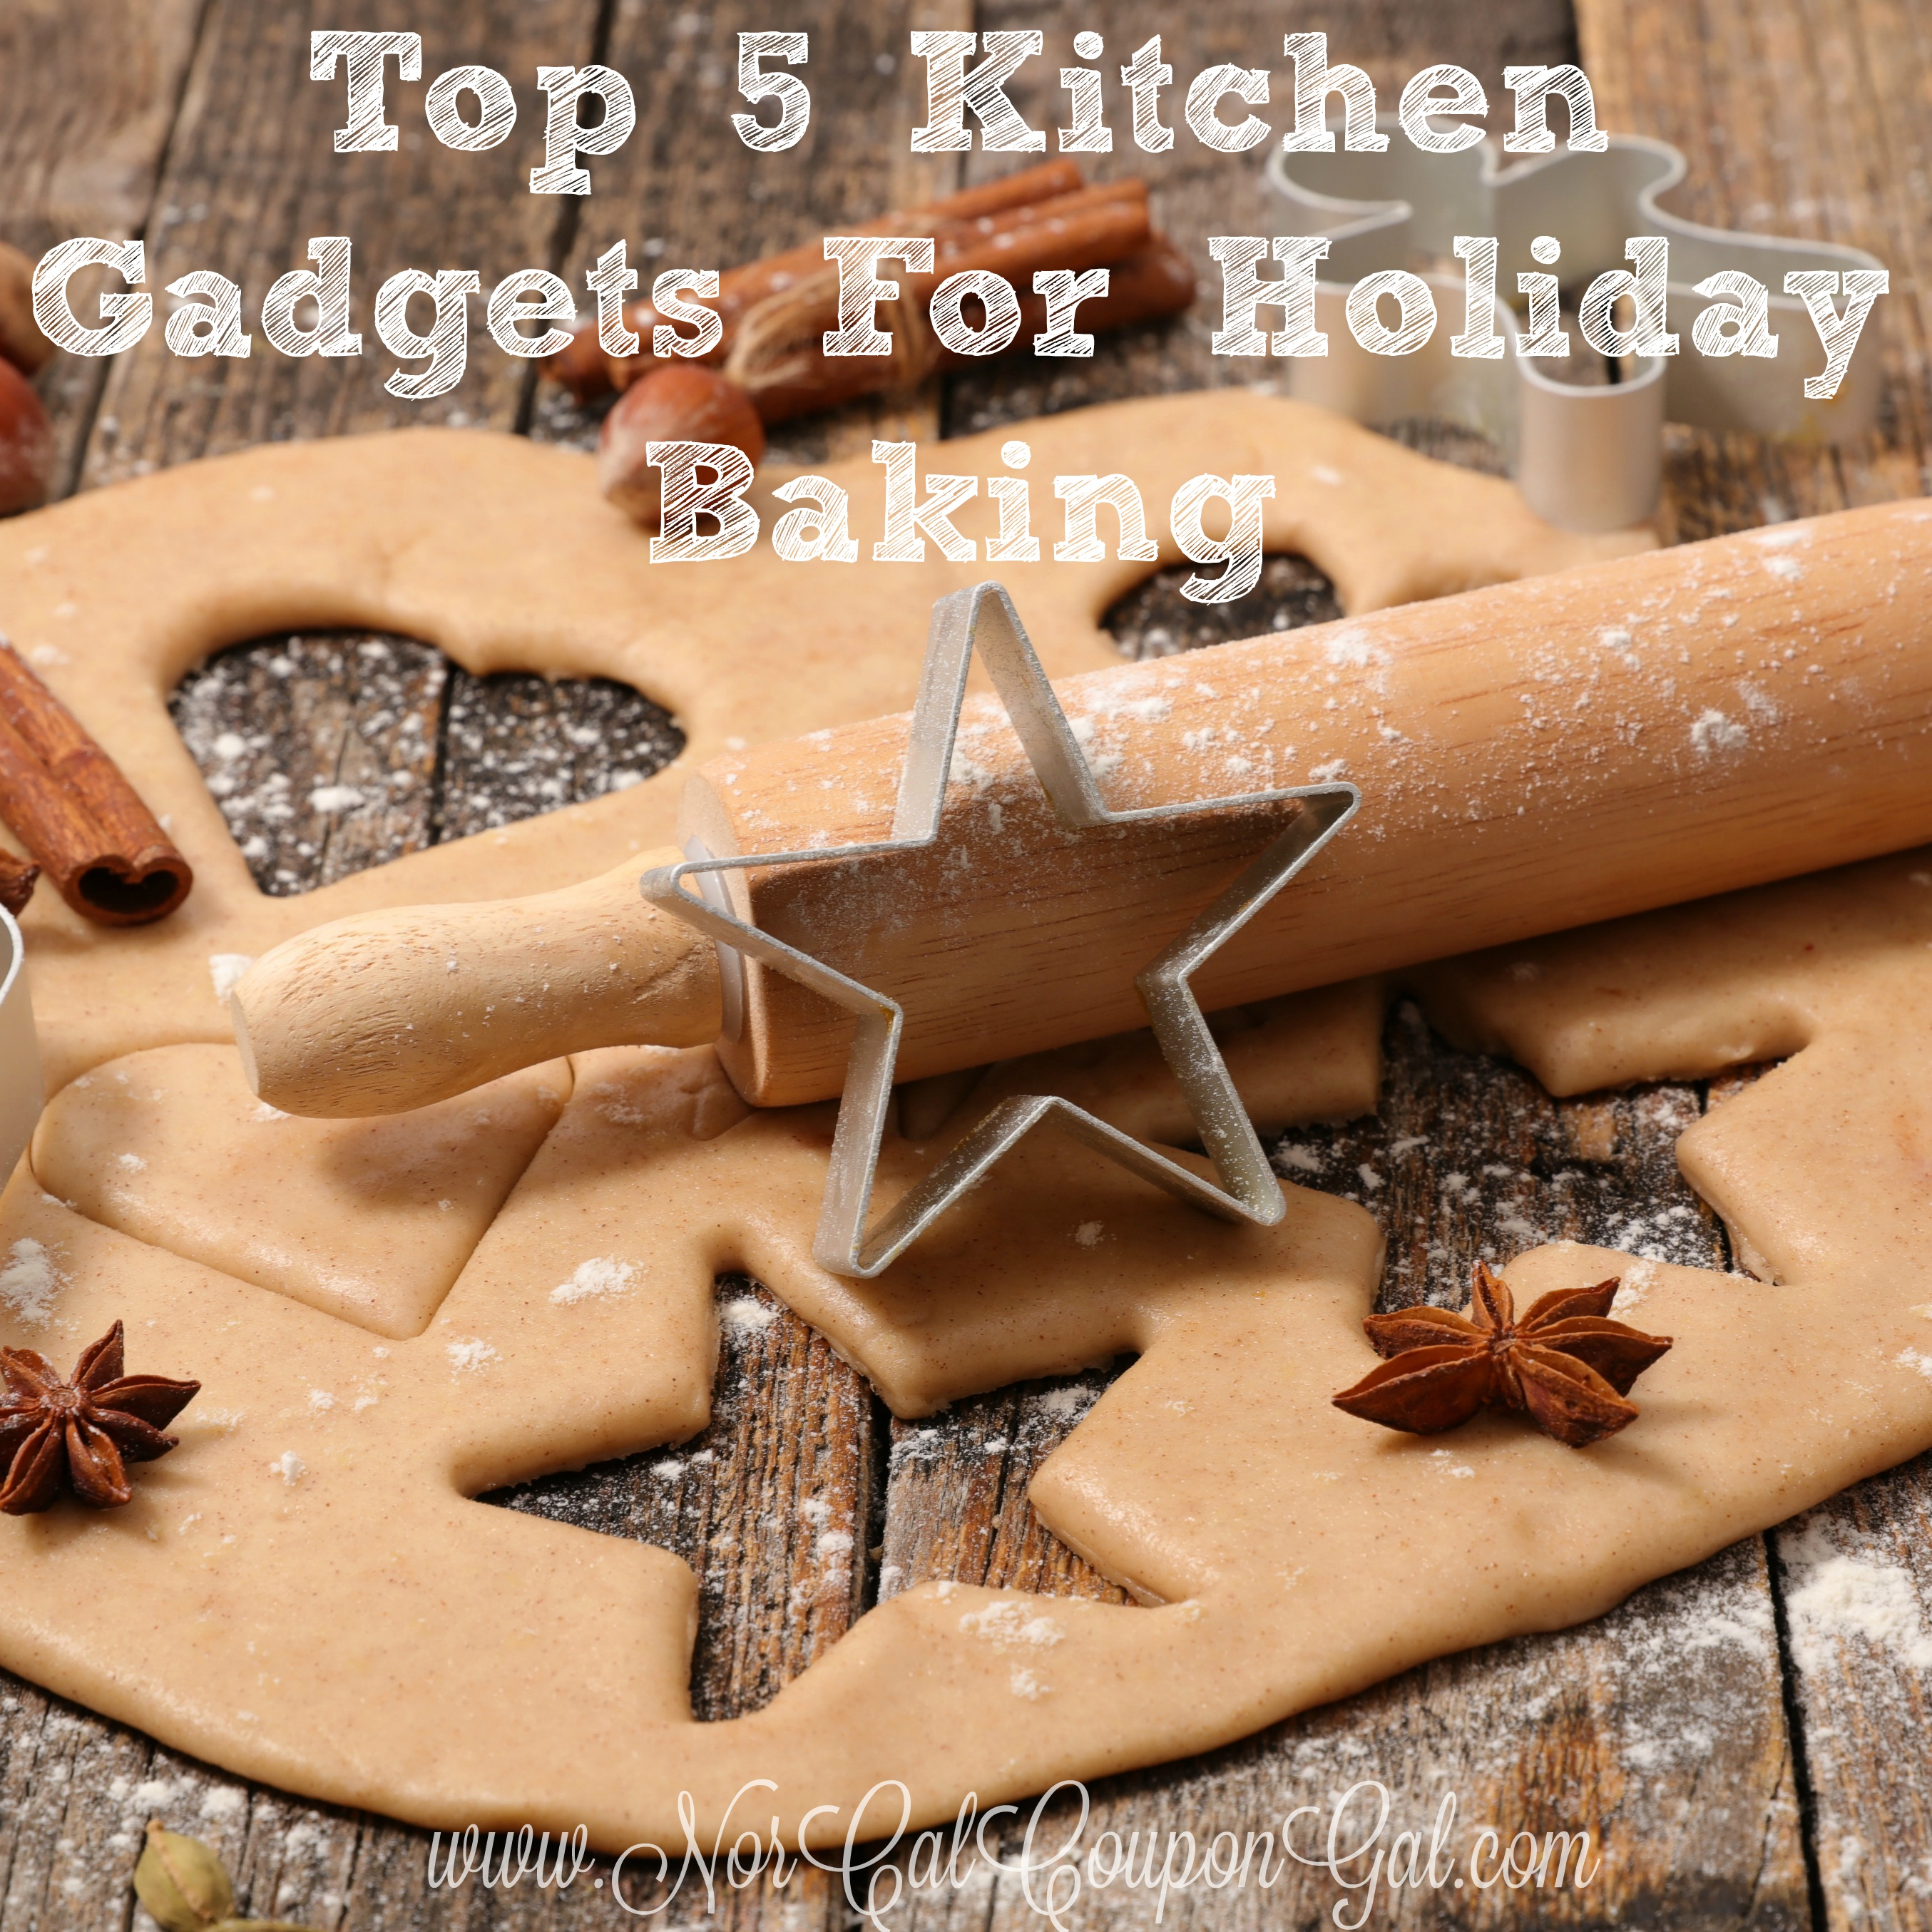 My Top 5 Kitchen Gadgets For Holiday Baking Norcal